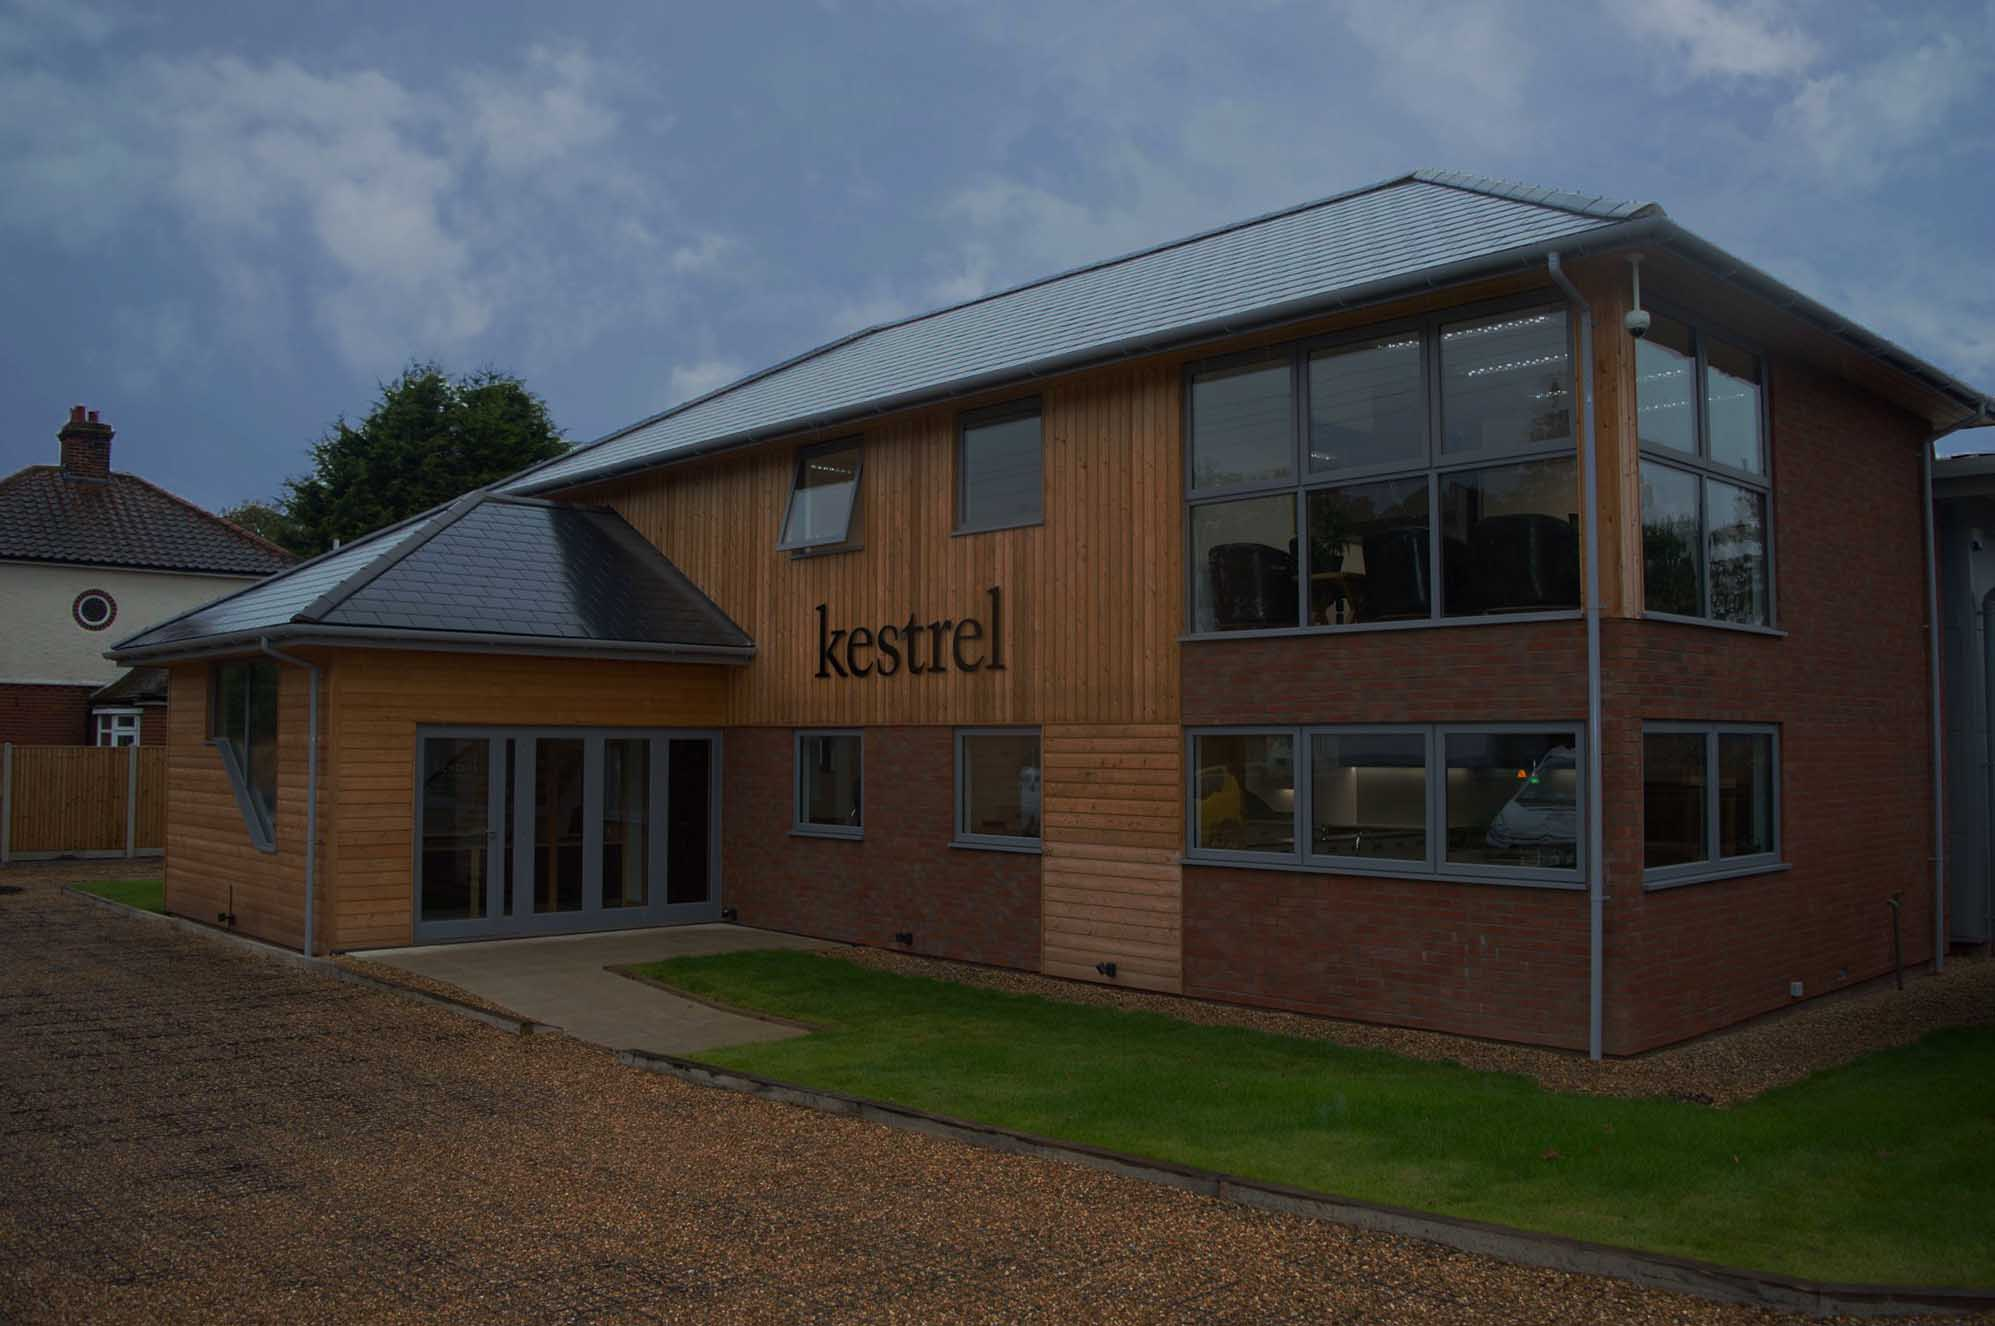 Kestrel Kitchens